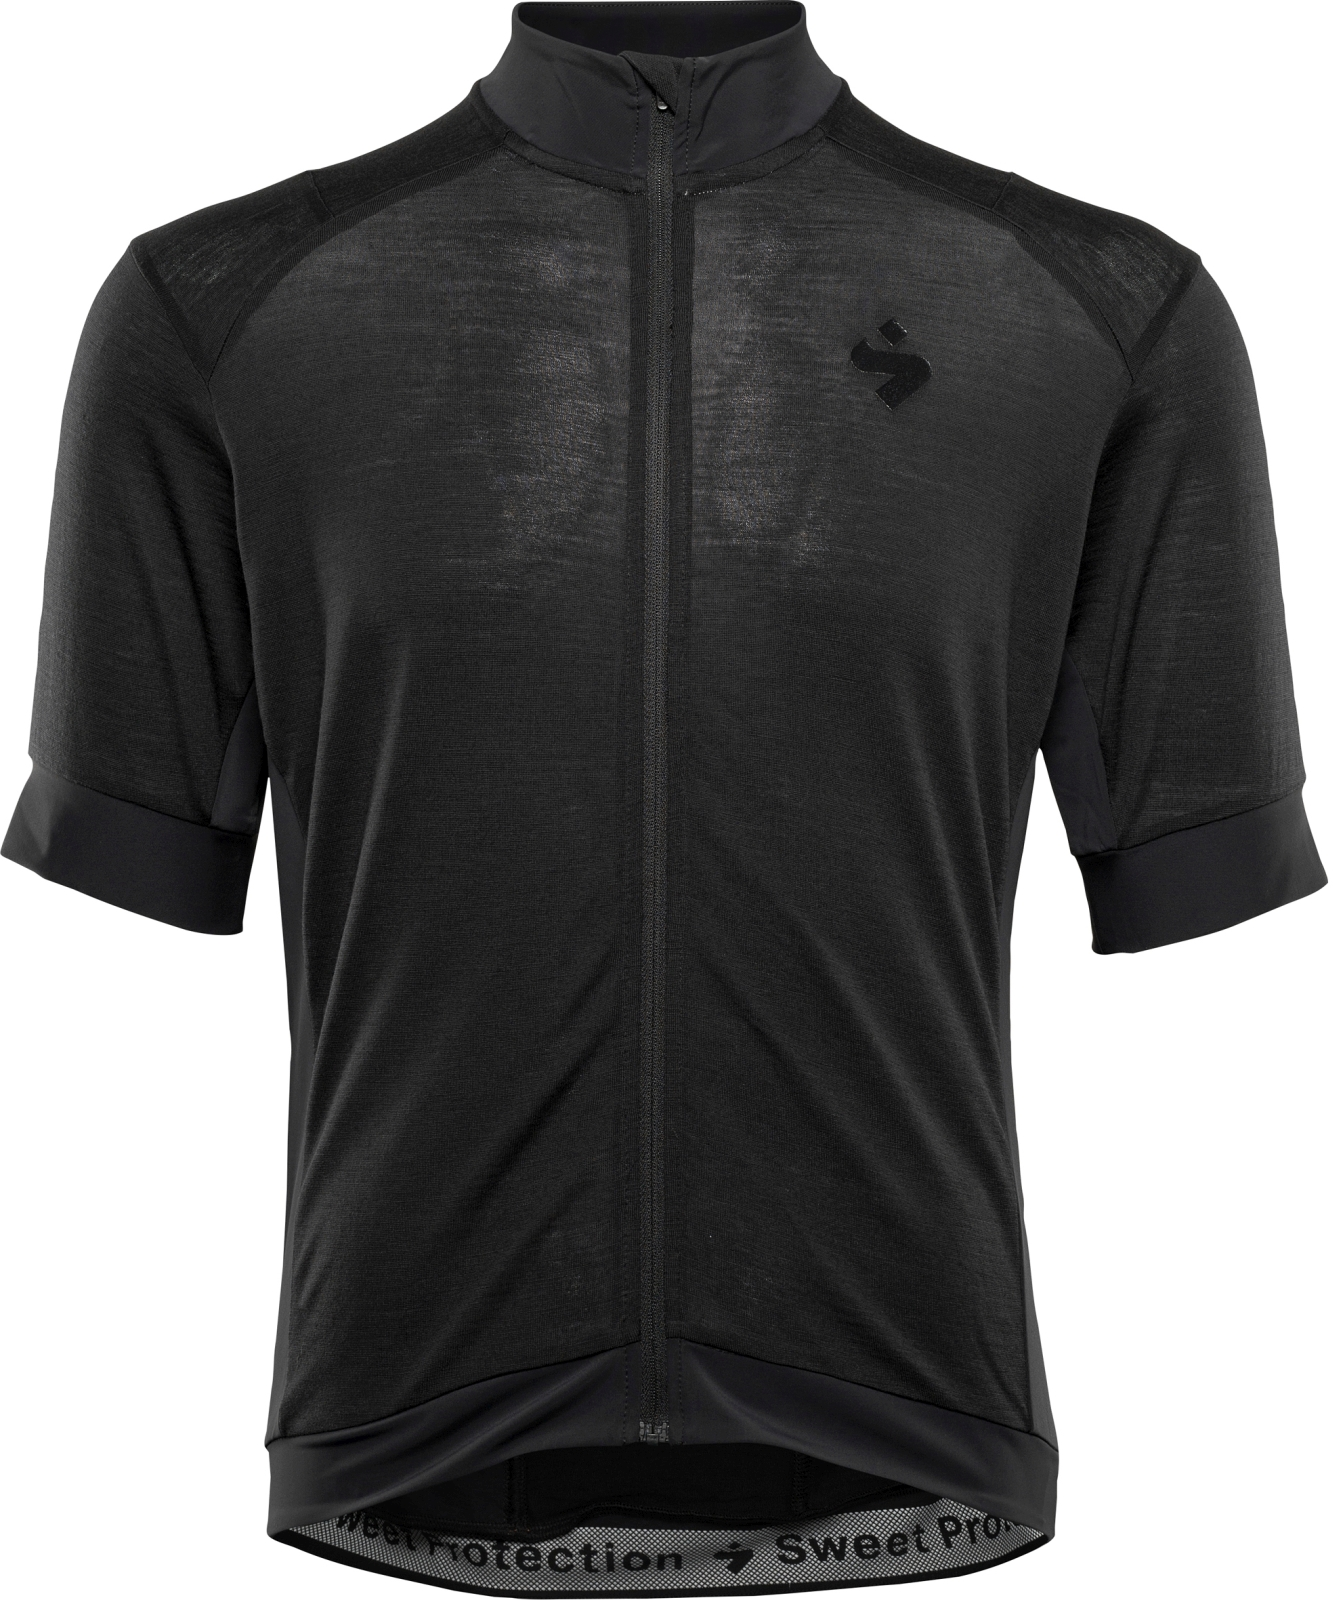 Sweet Protection Crossfire Merino SS Jersey M - black XL